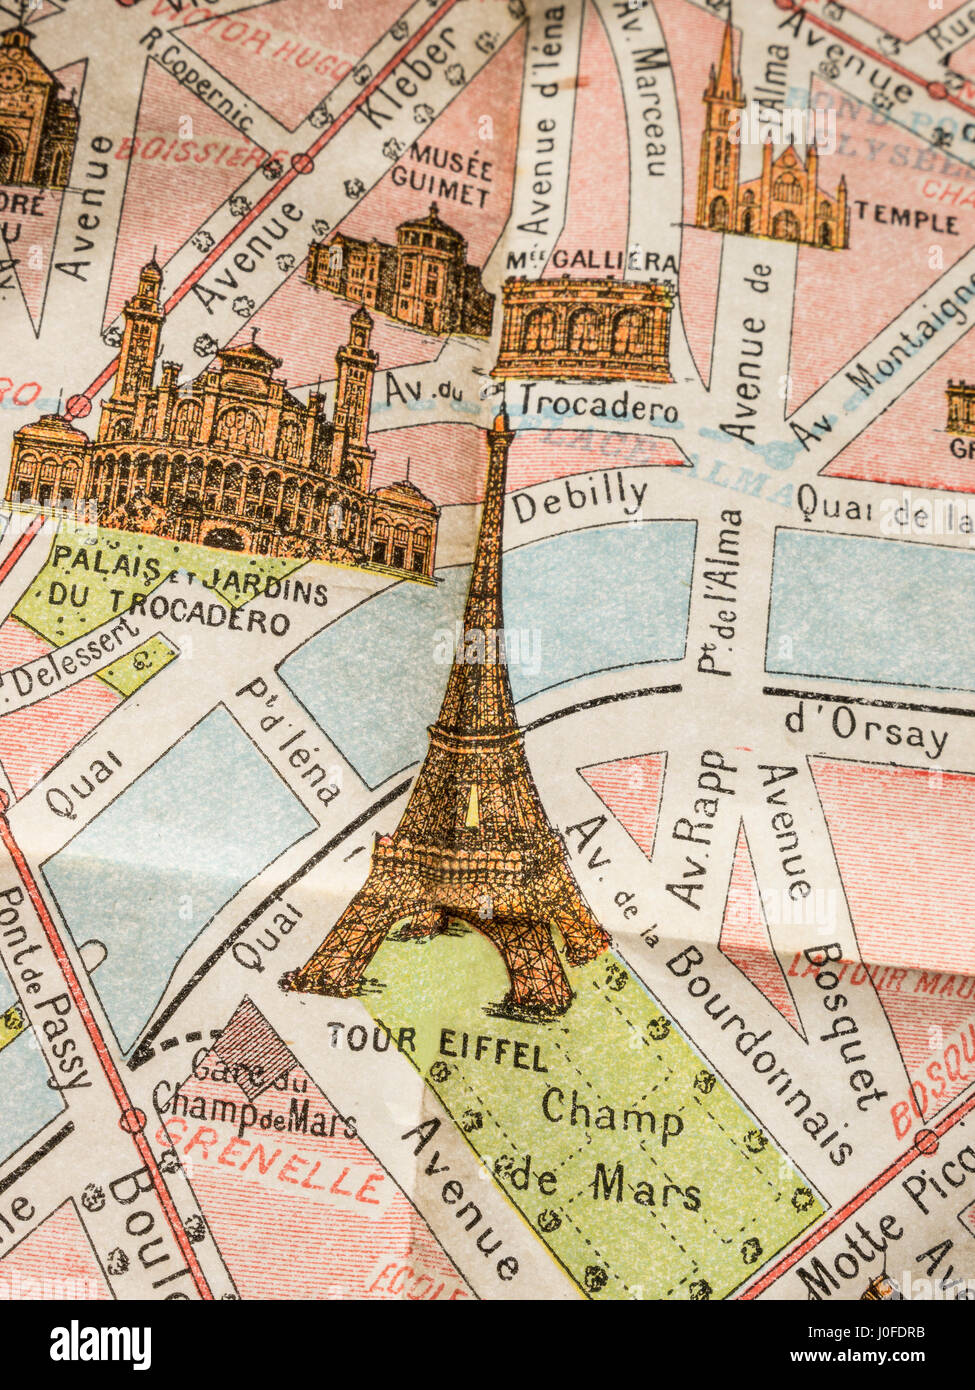 Fine print detail of rare 1900's vintage retro colour Monumental Map of Paris, featuring Eiffel Tower and Trocadero - Stock Image